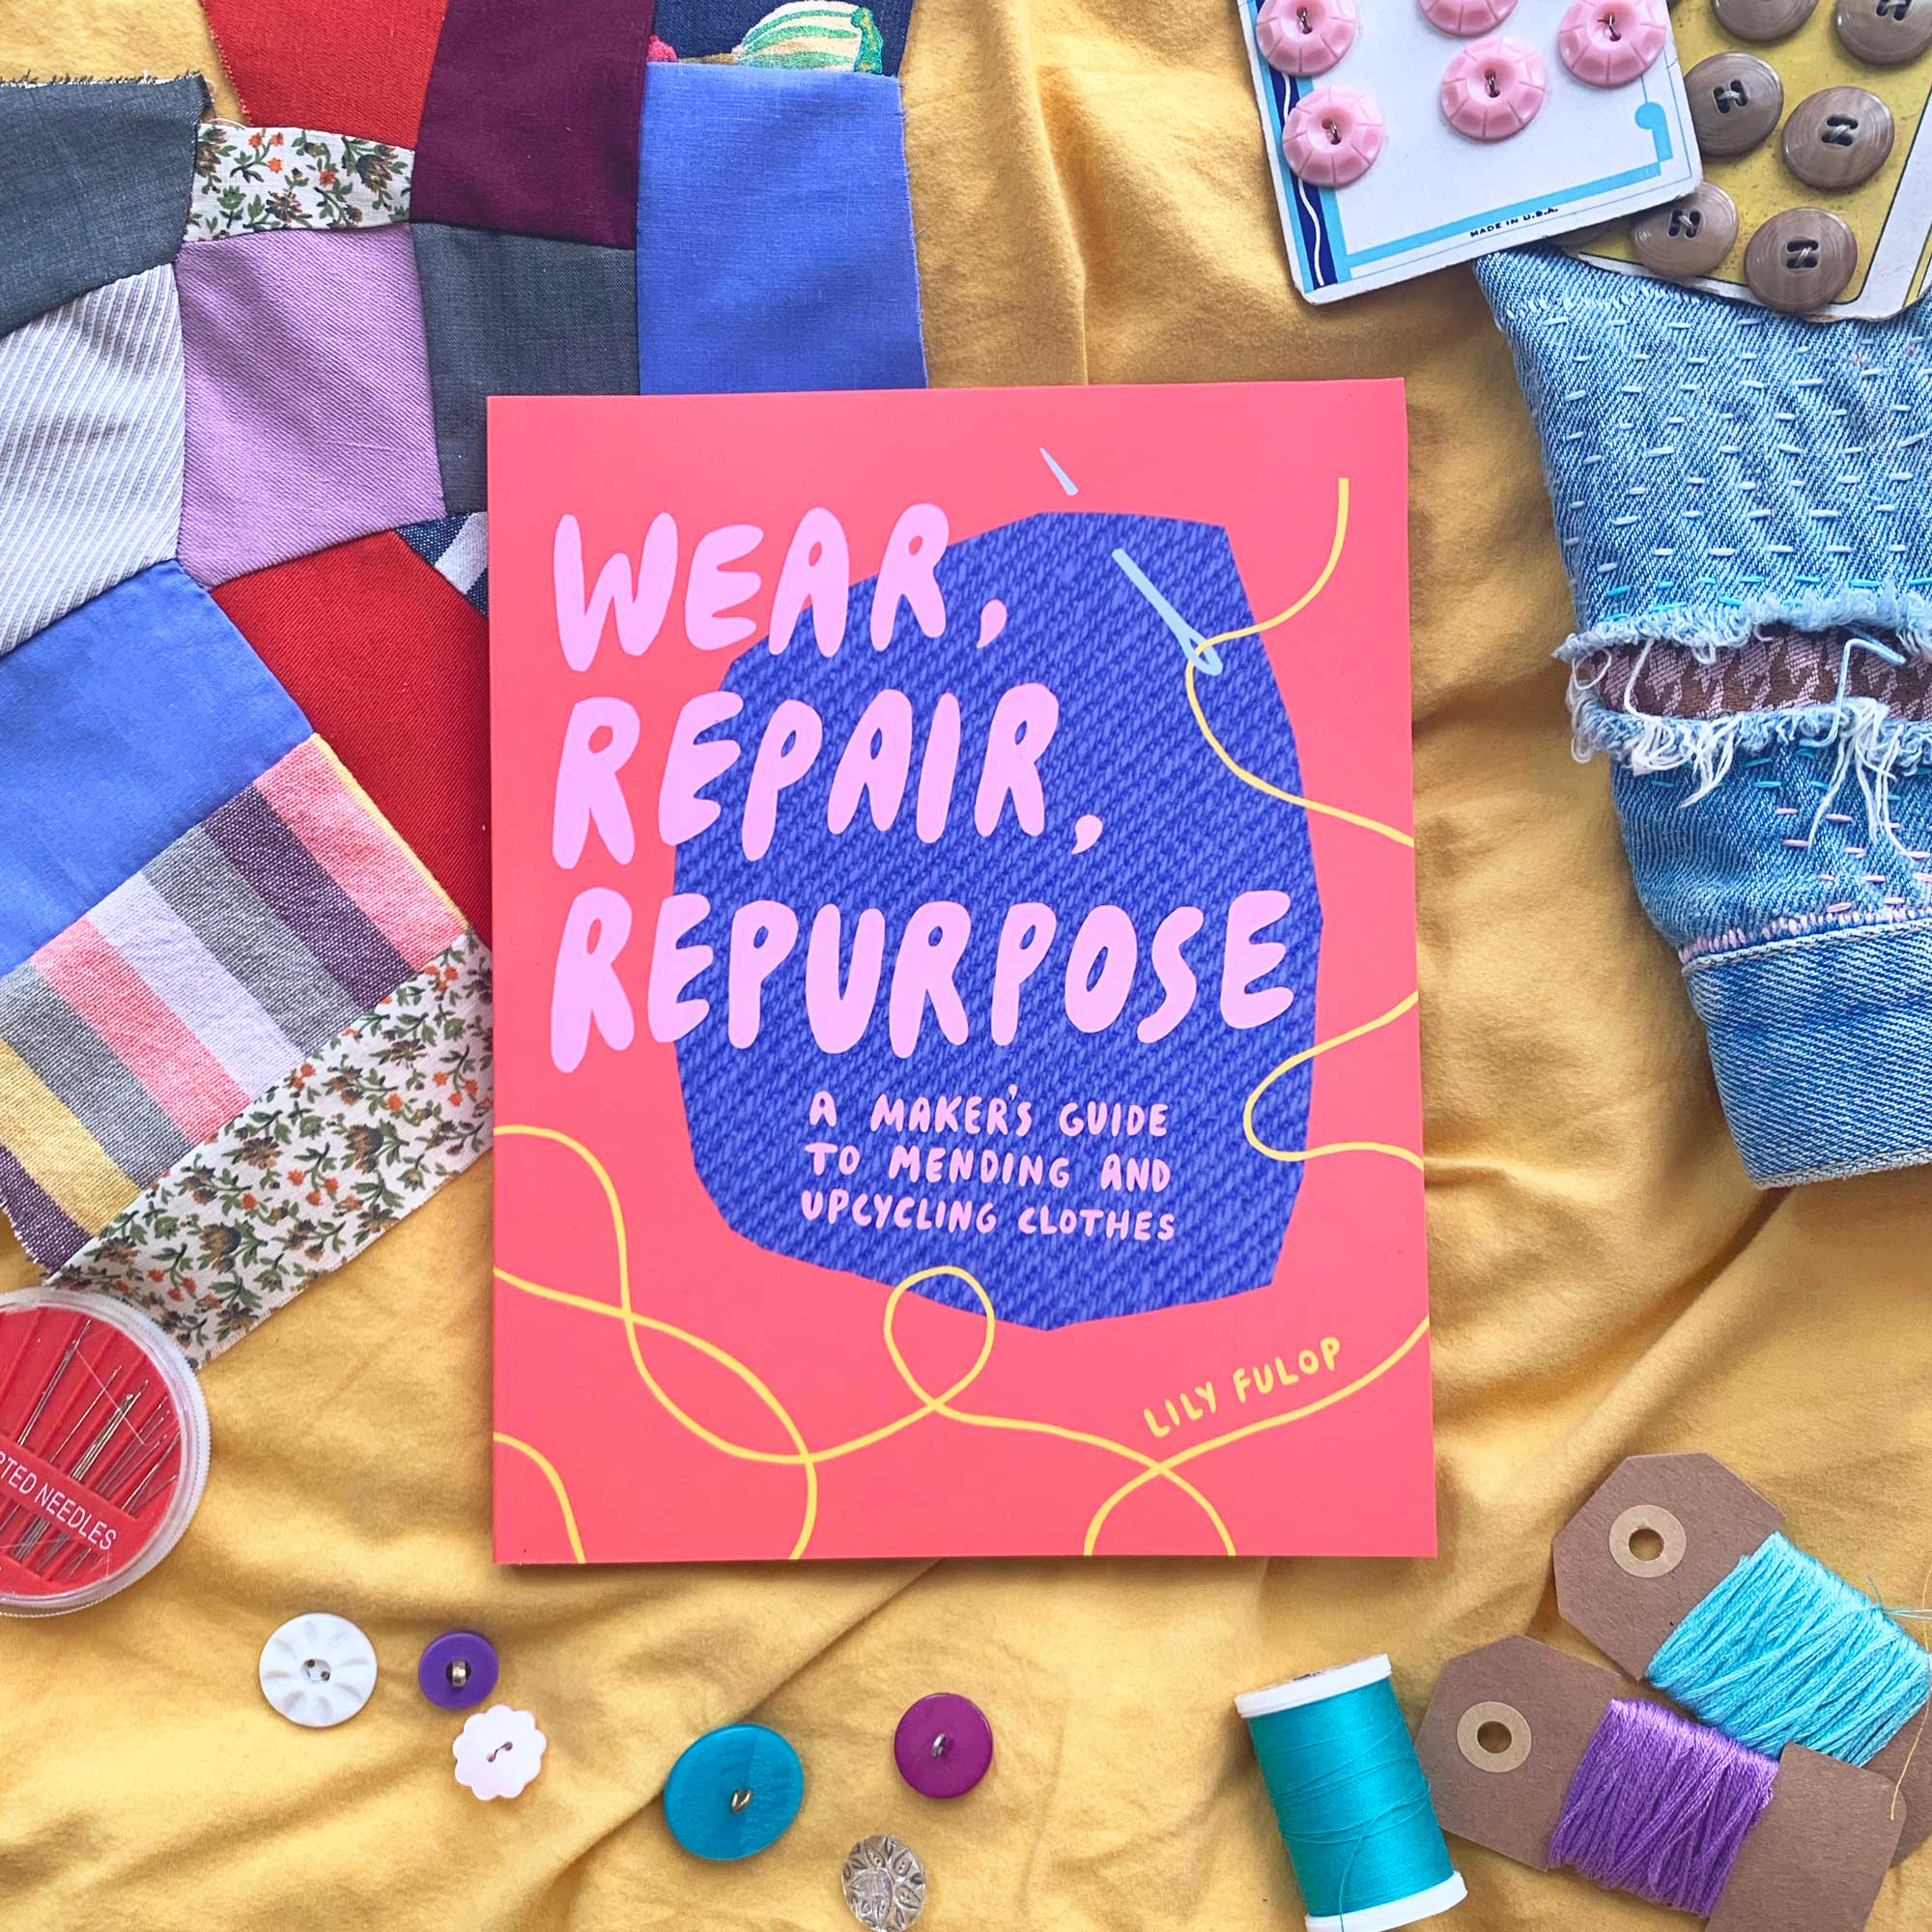 Wear Repair Restore by Lily Fulop